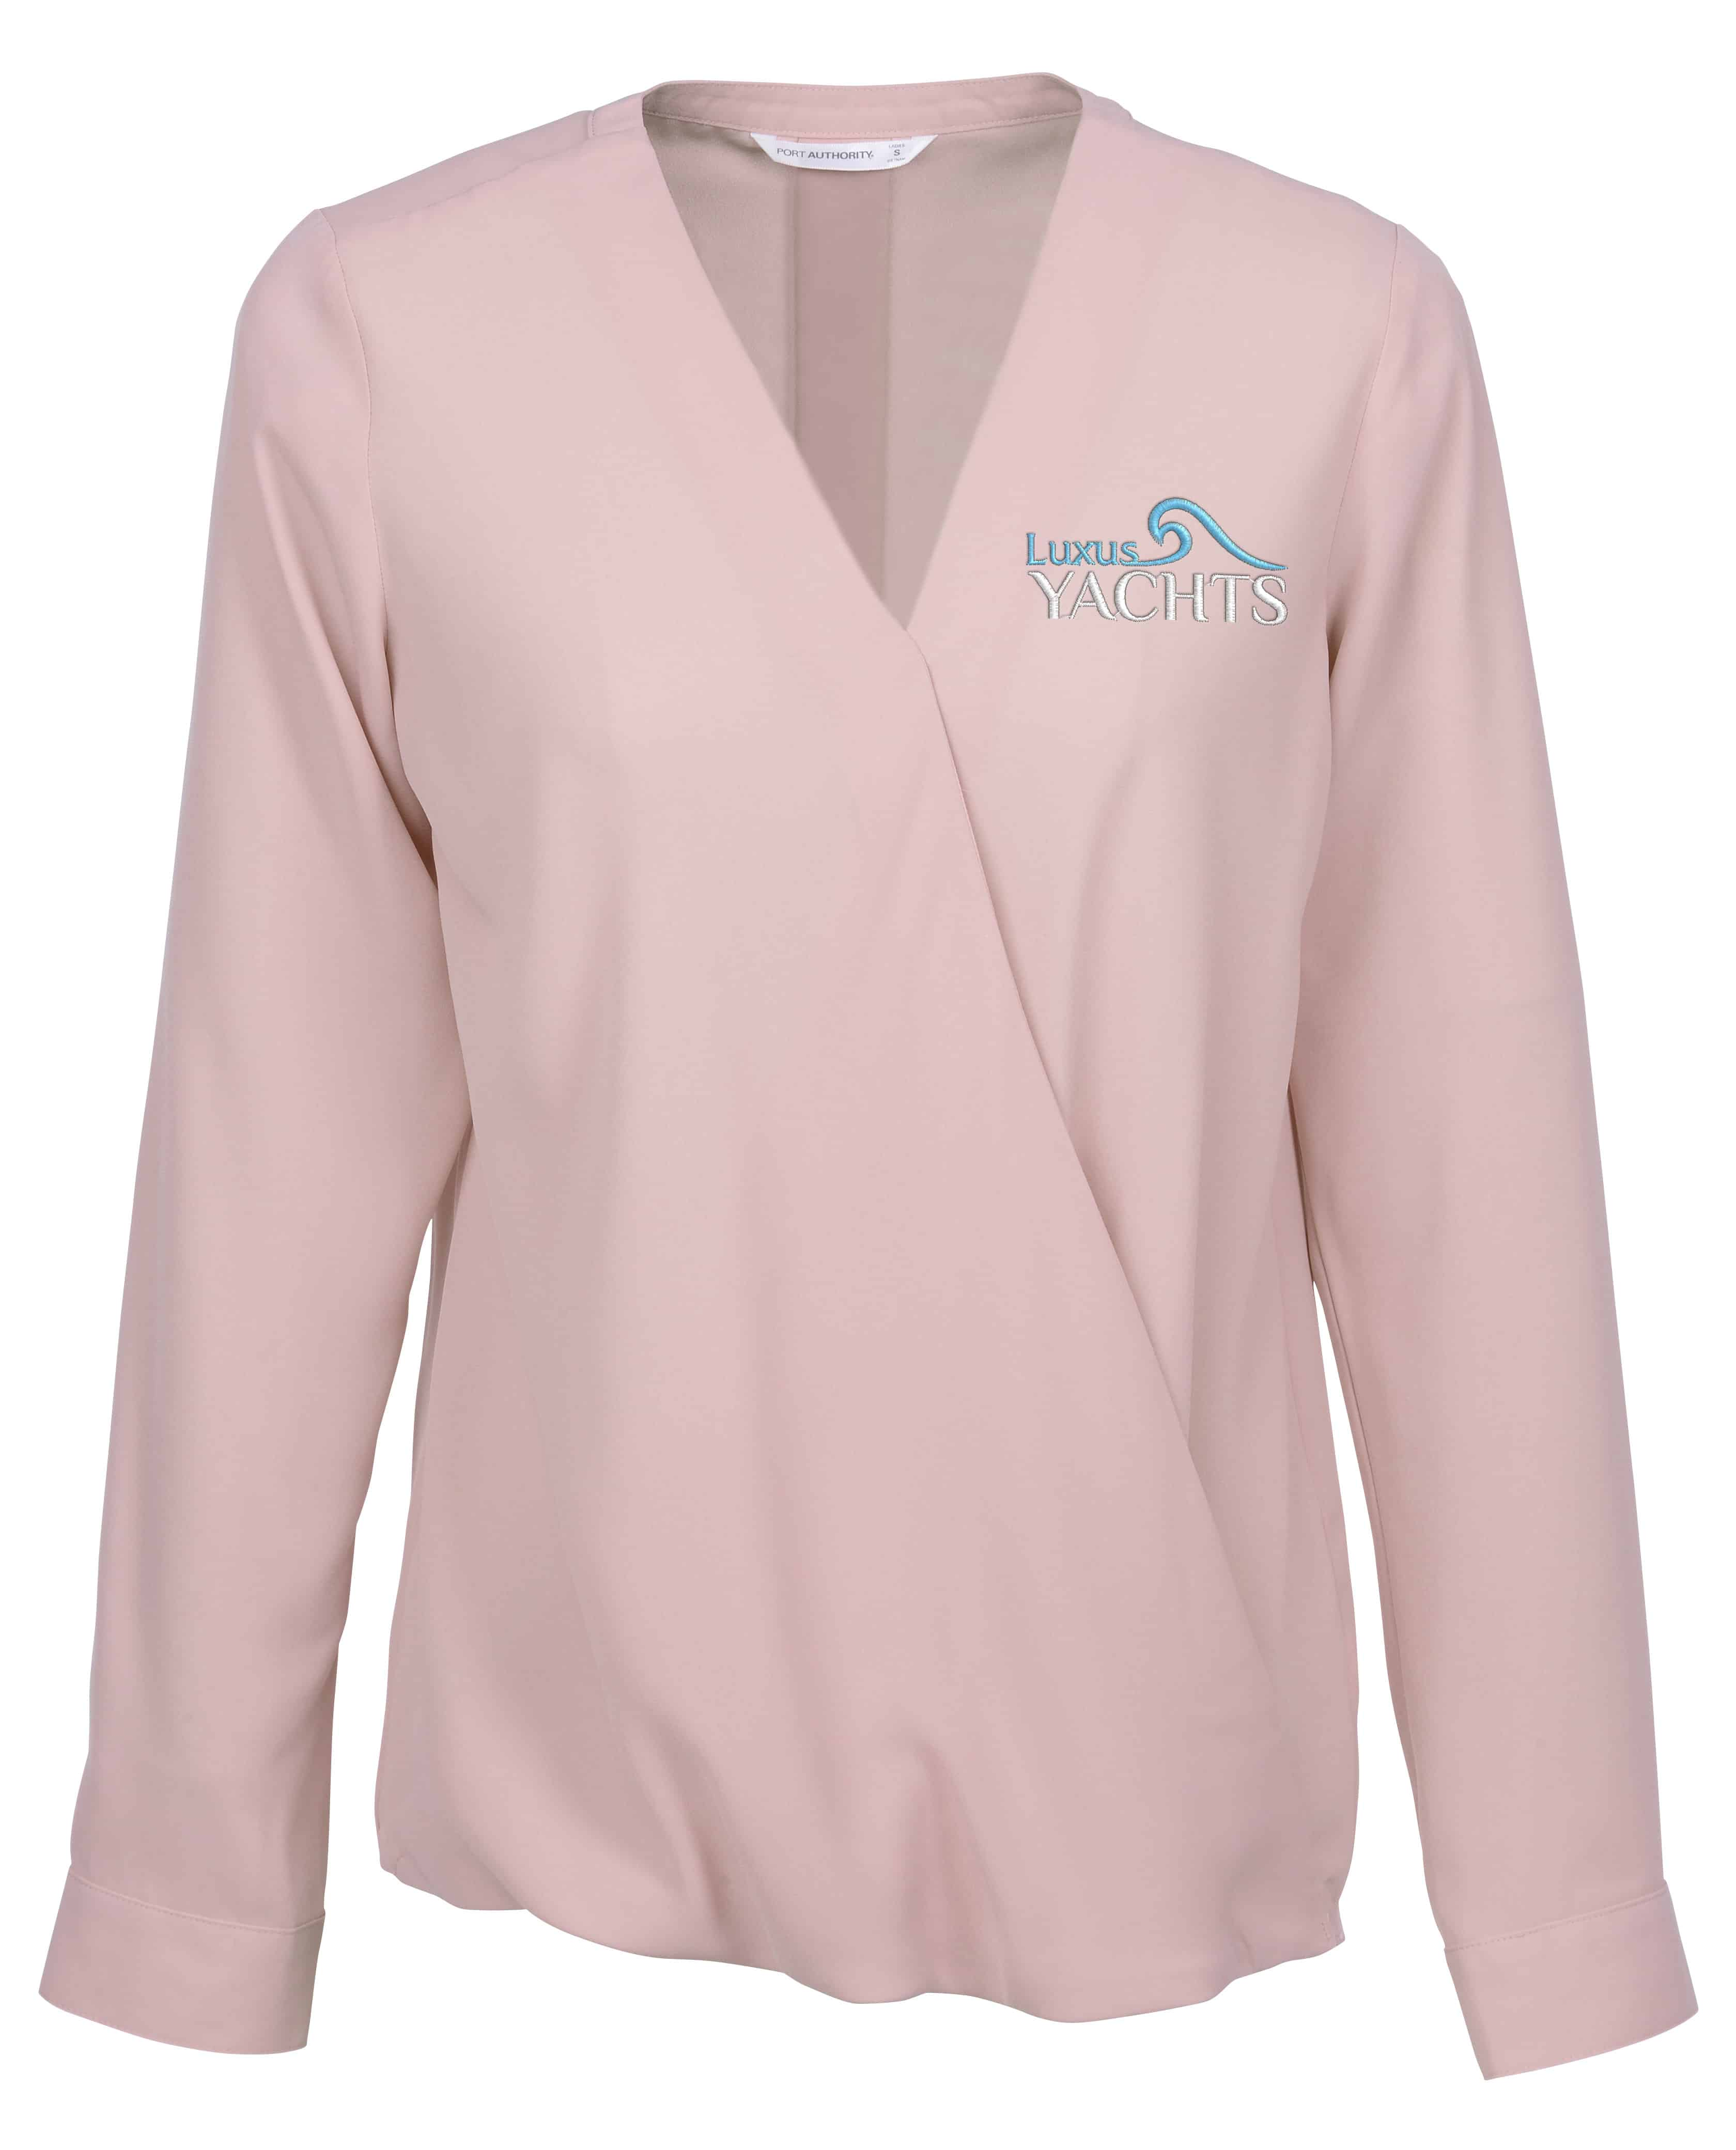 A Poly Crepe Crossover Blouse for women.